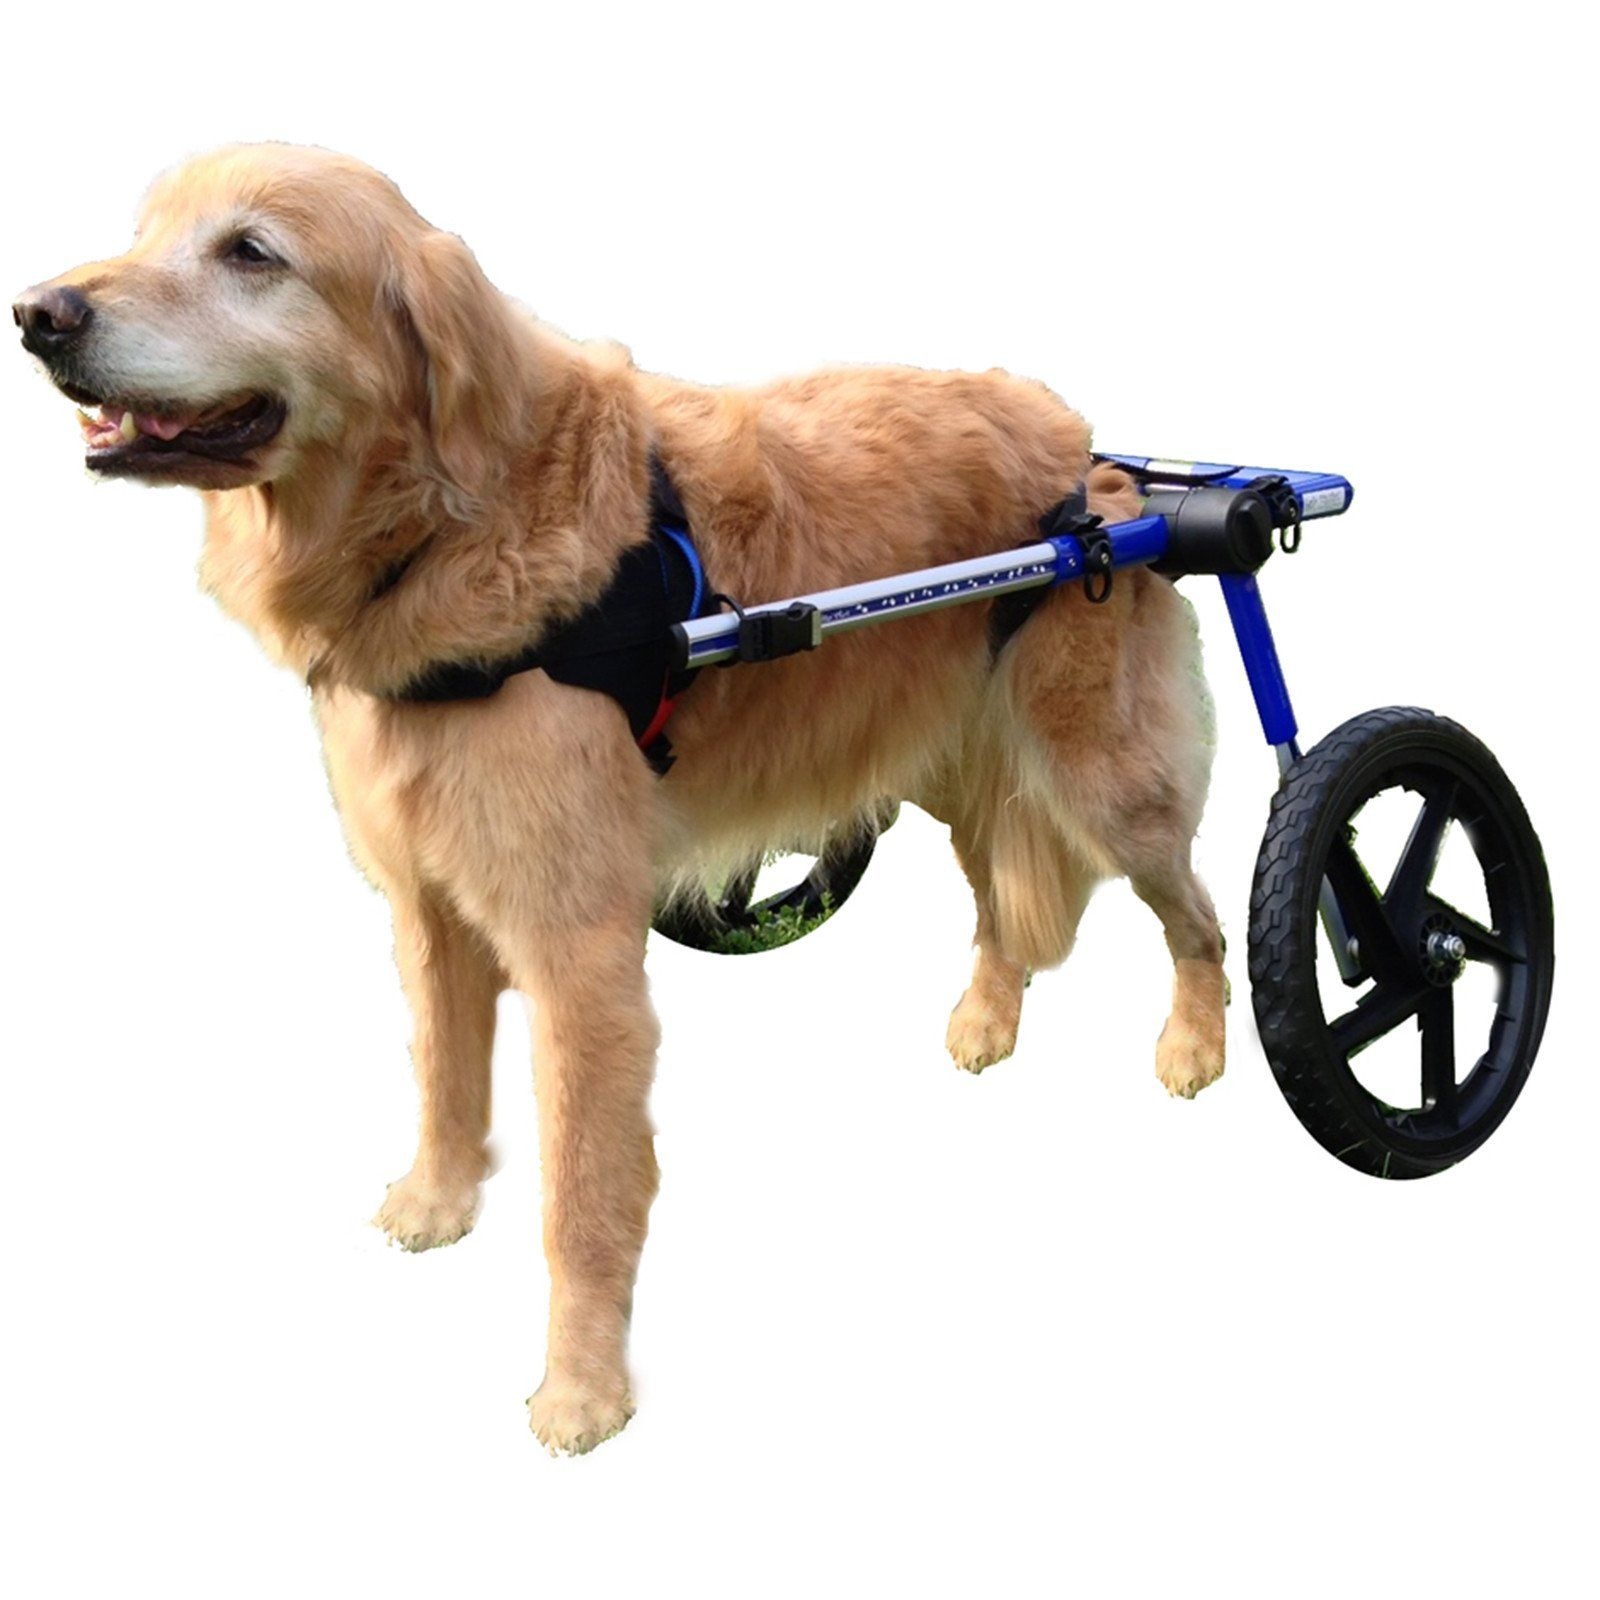 Walkin' Wheels dog wheelchair enables your dog or other pet to run and play again; get the exercise he or she needs, and live a happy, healthy life.